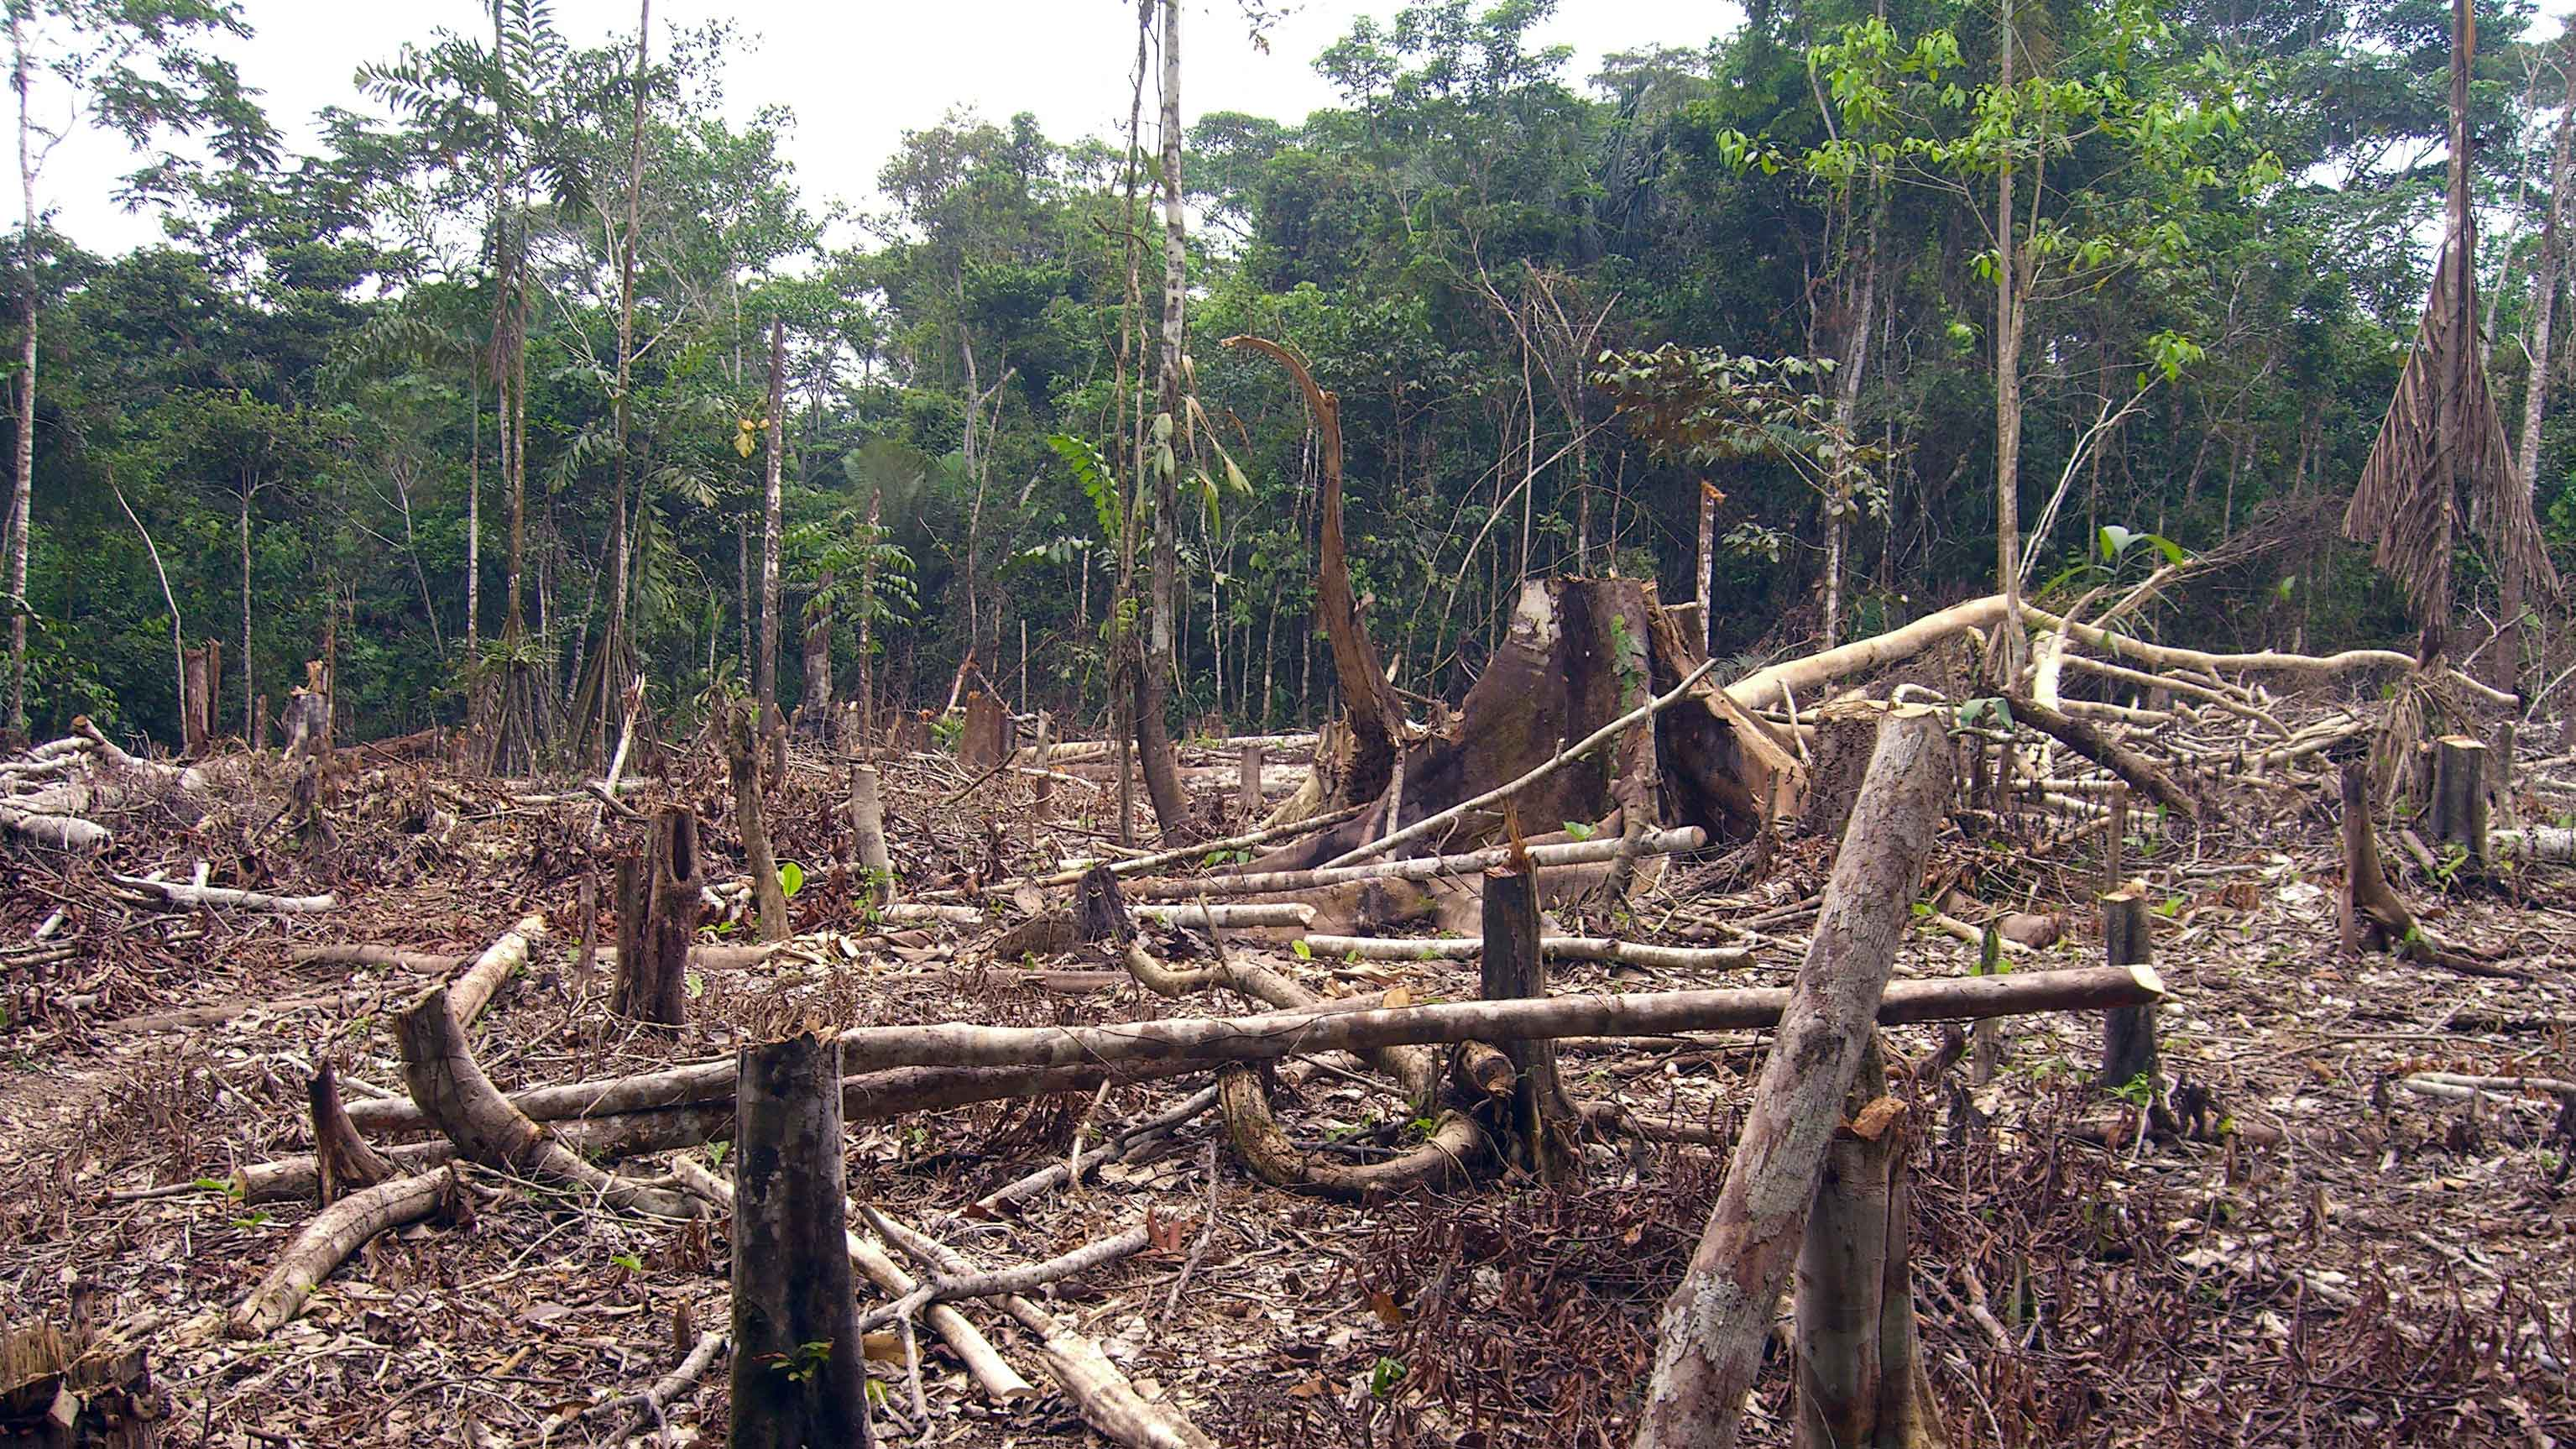 Image showing Deforestation of the Amazon forest in Colombia